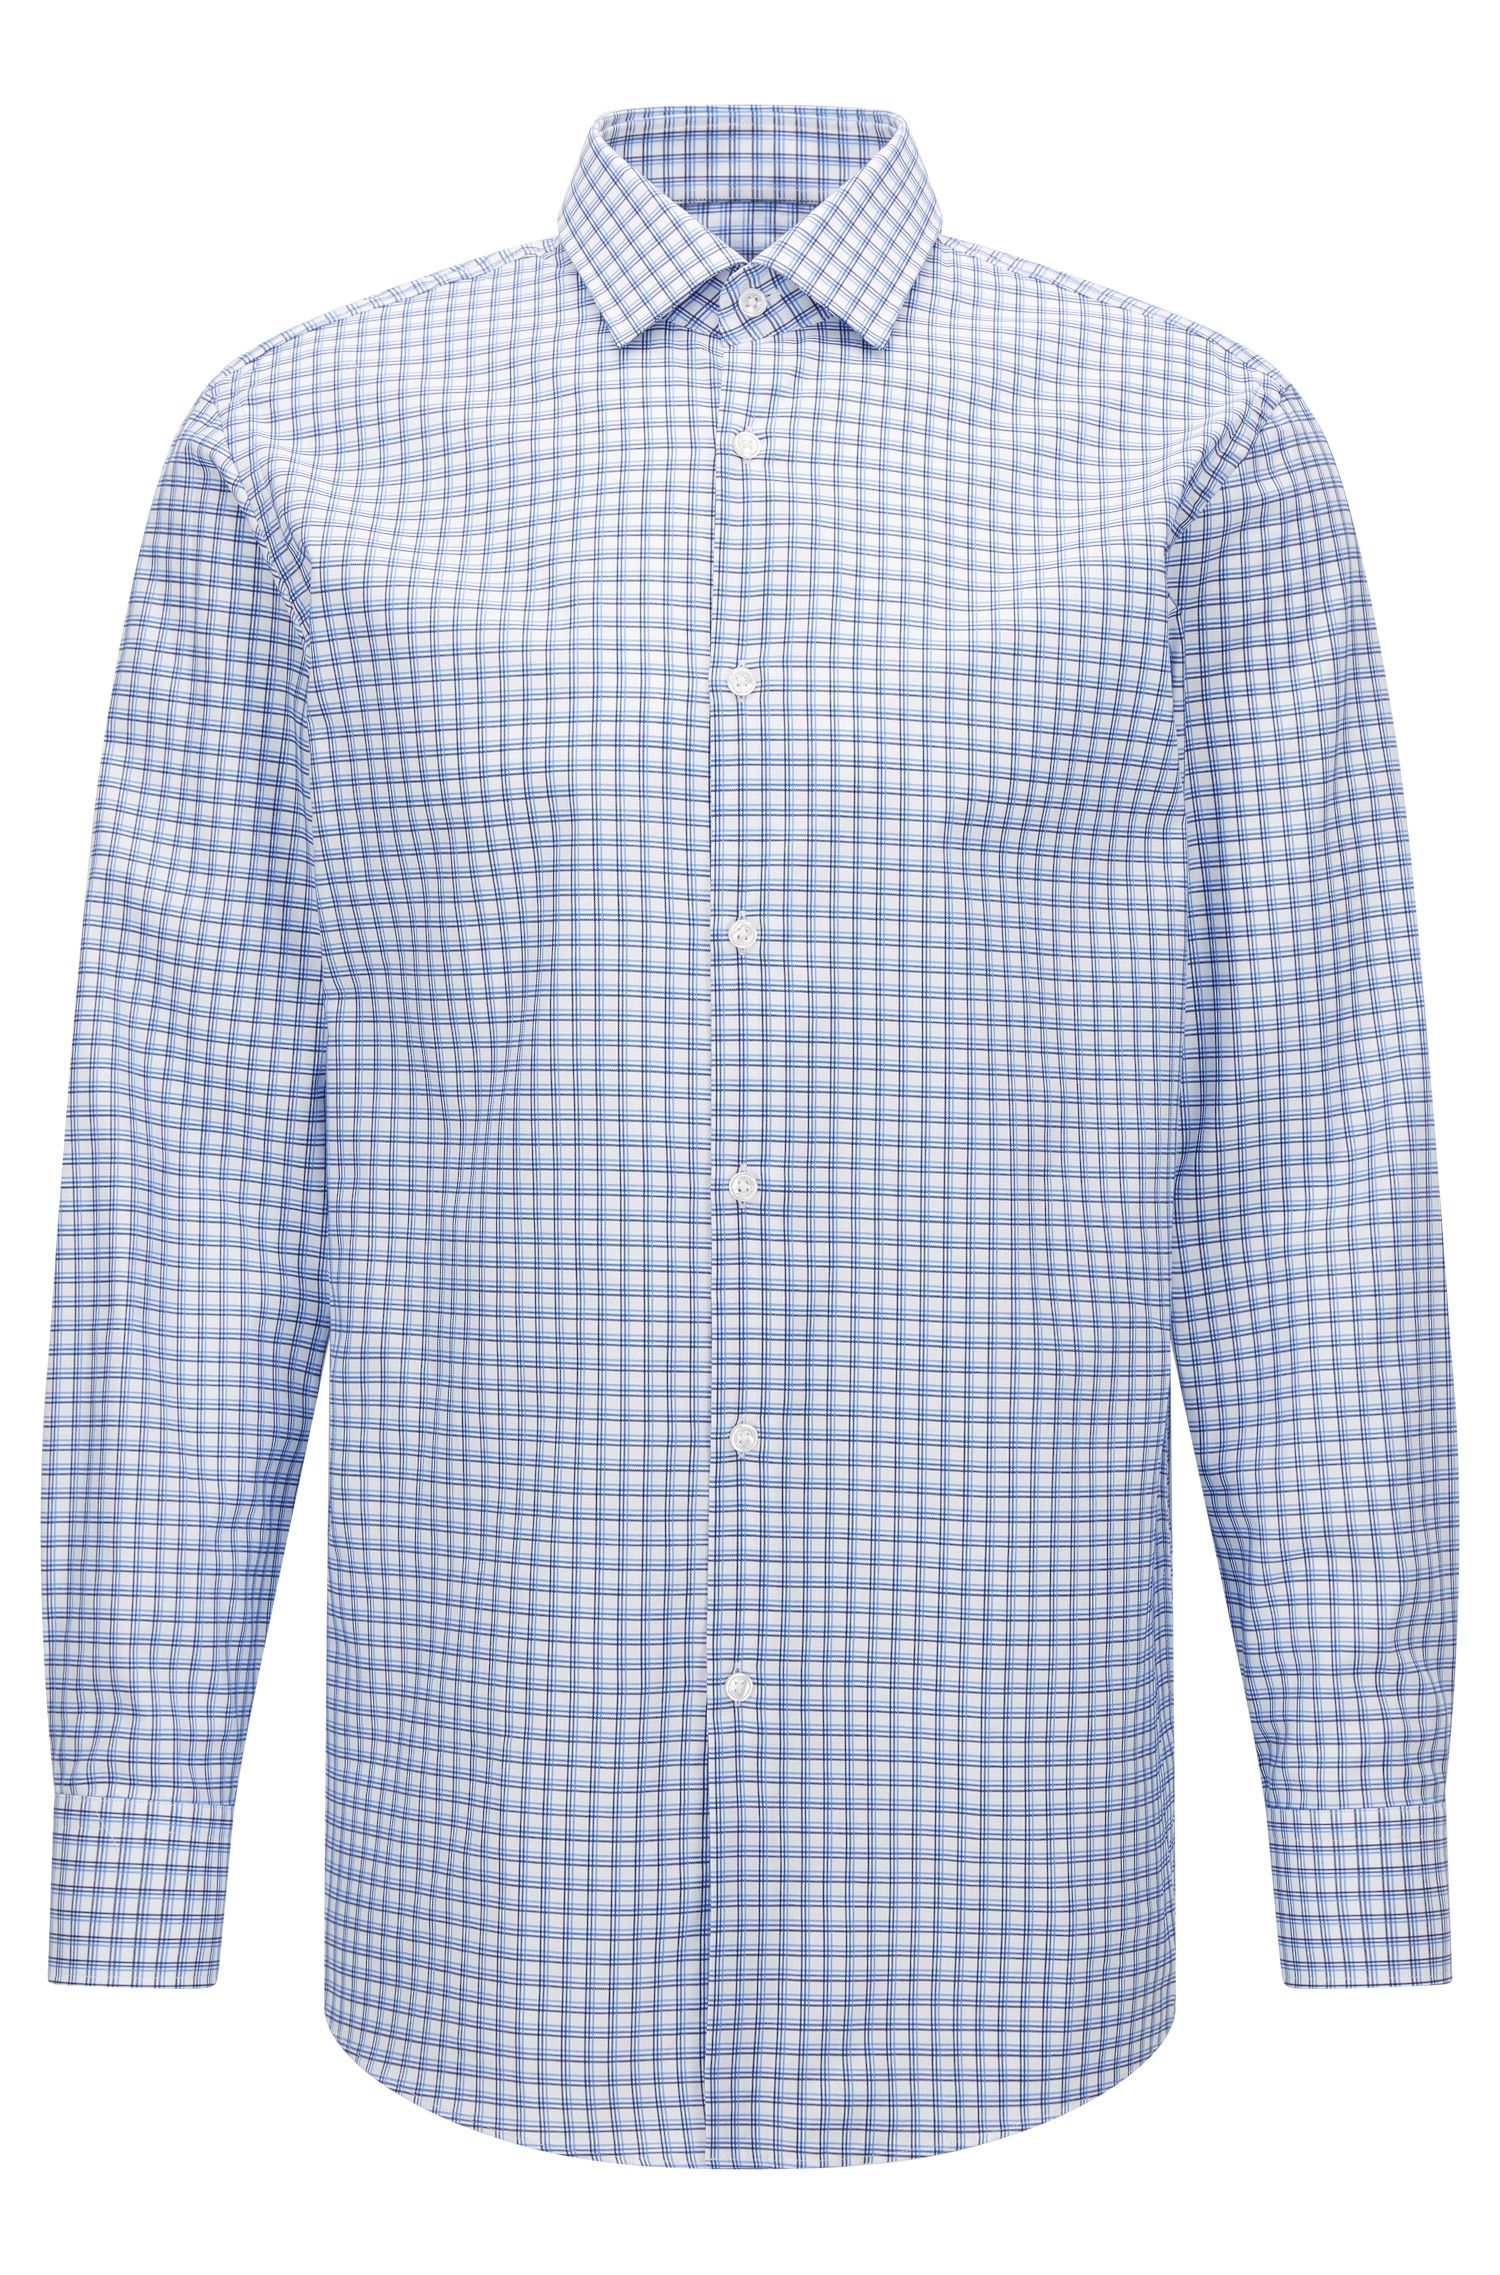 Tattersall Cotton Dress Shirt, Sharp Fit | Marley US